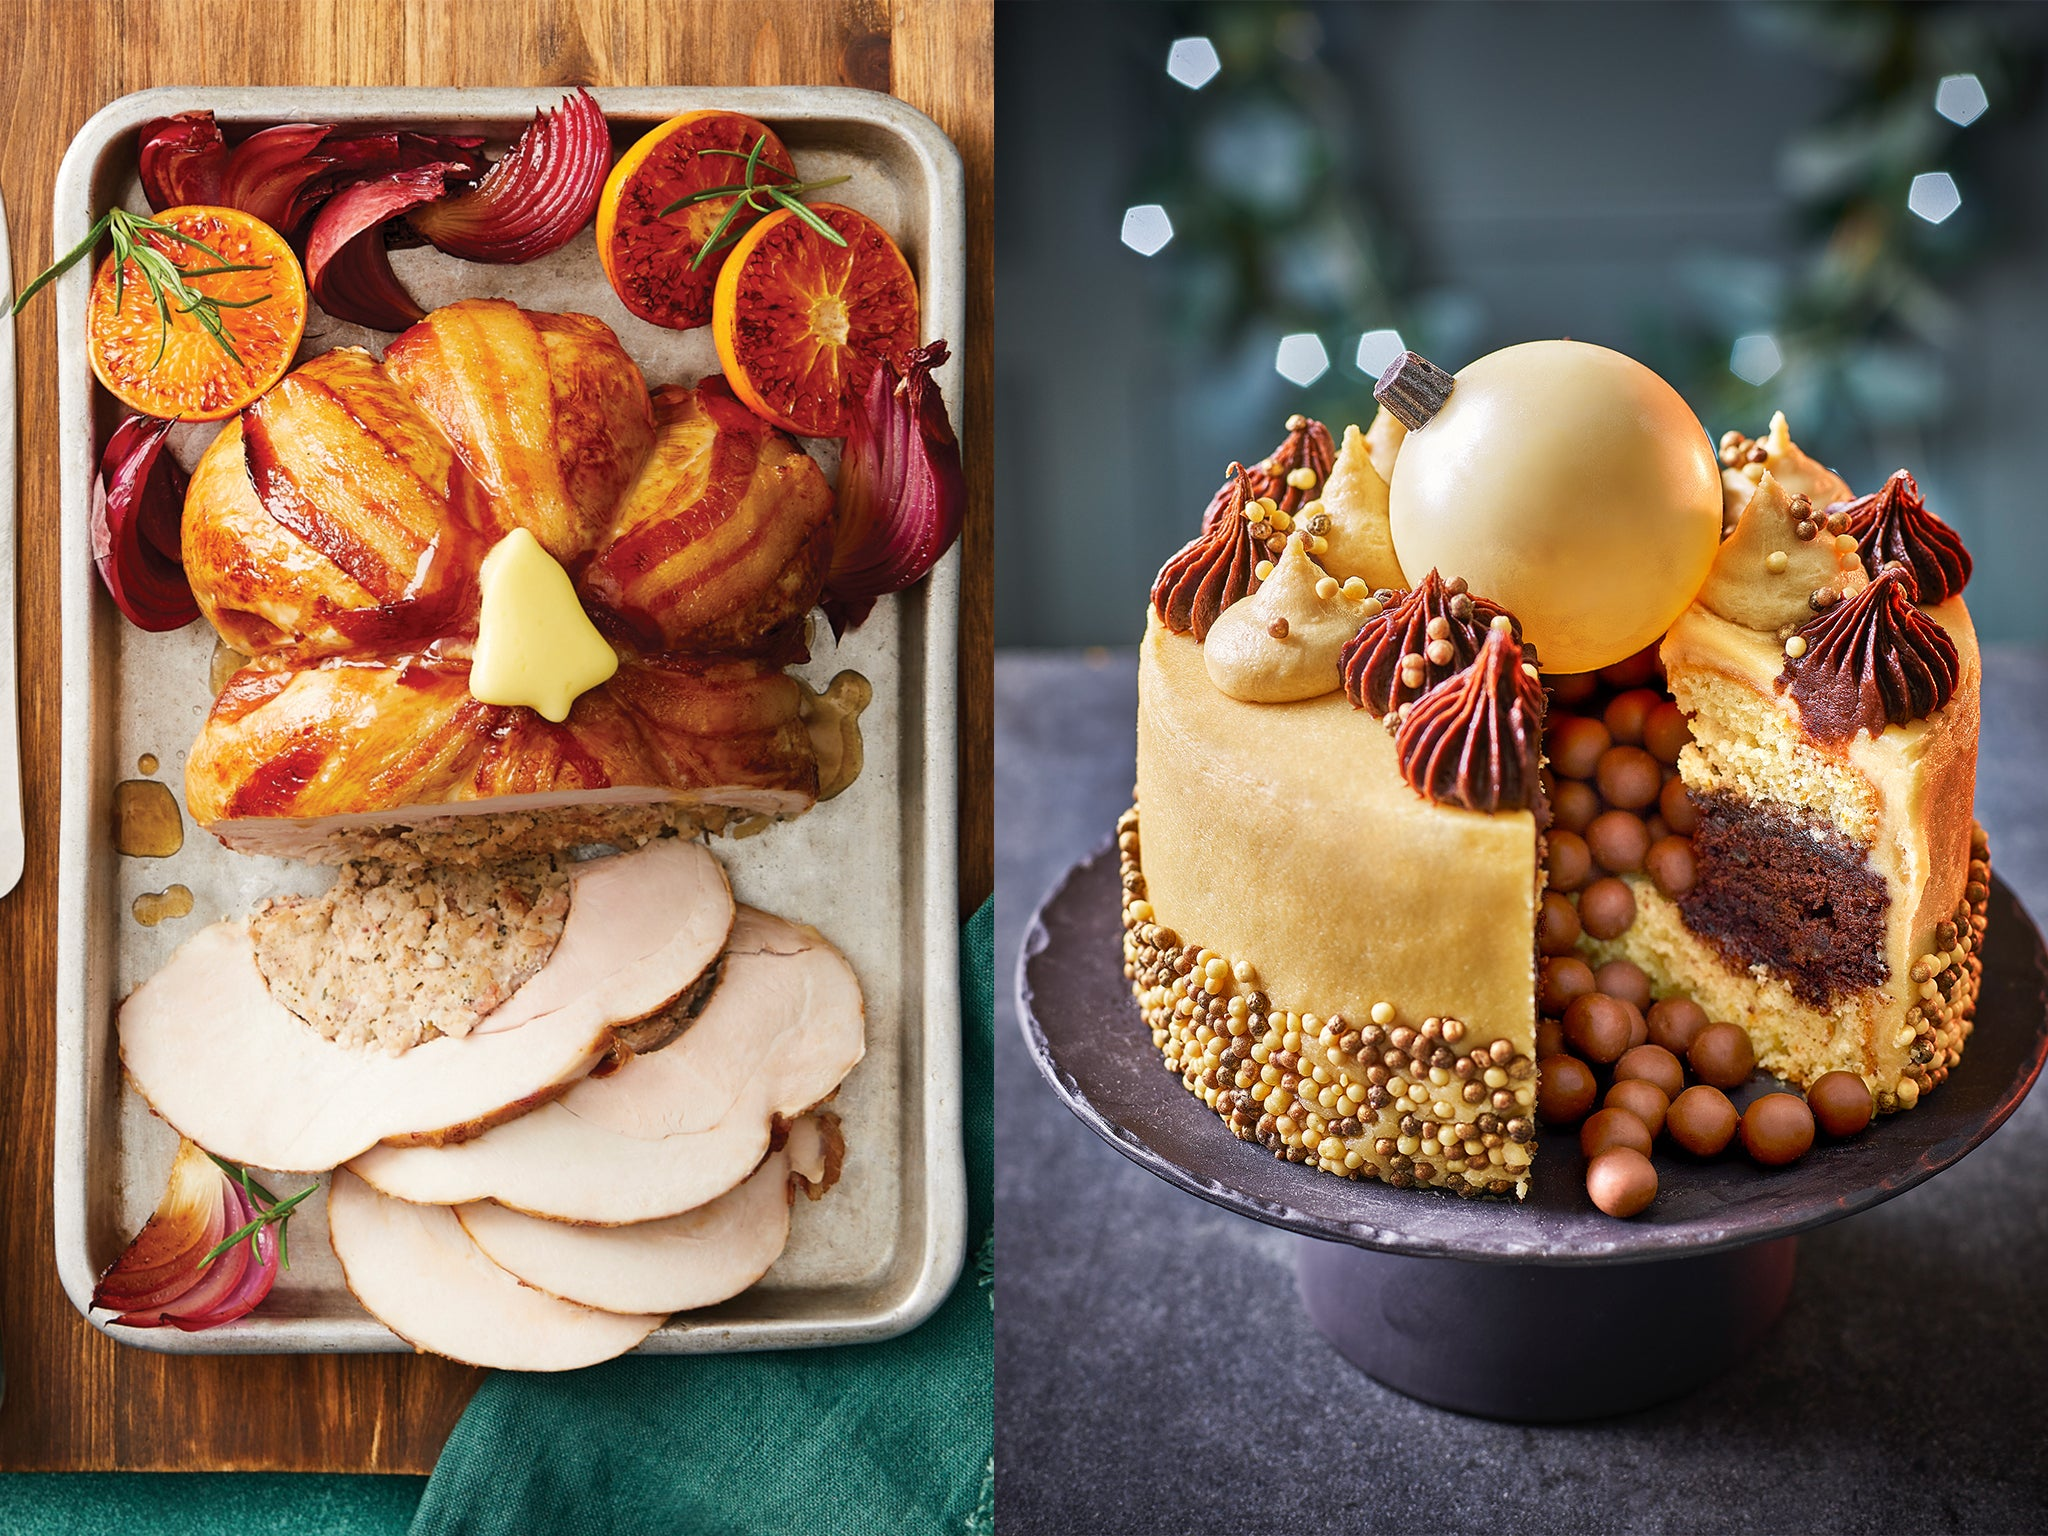 Christmas Food 2020 The Christmas 2020 food launches you need to know about, from